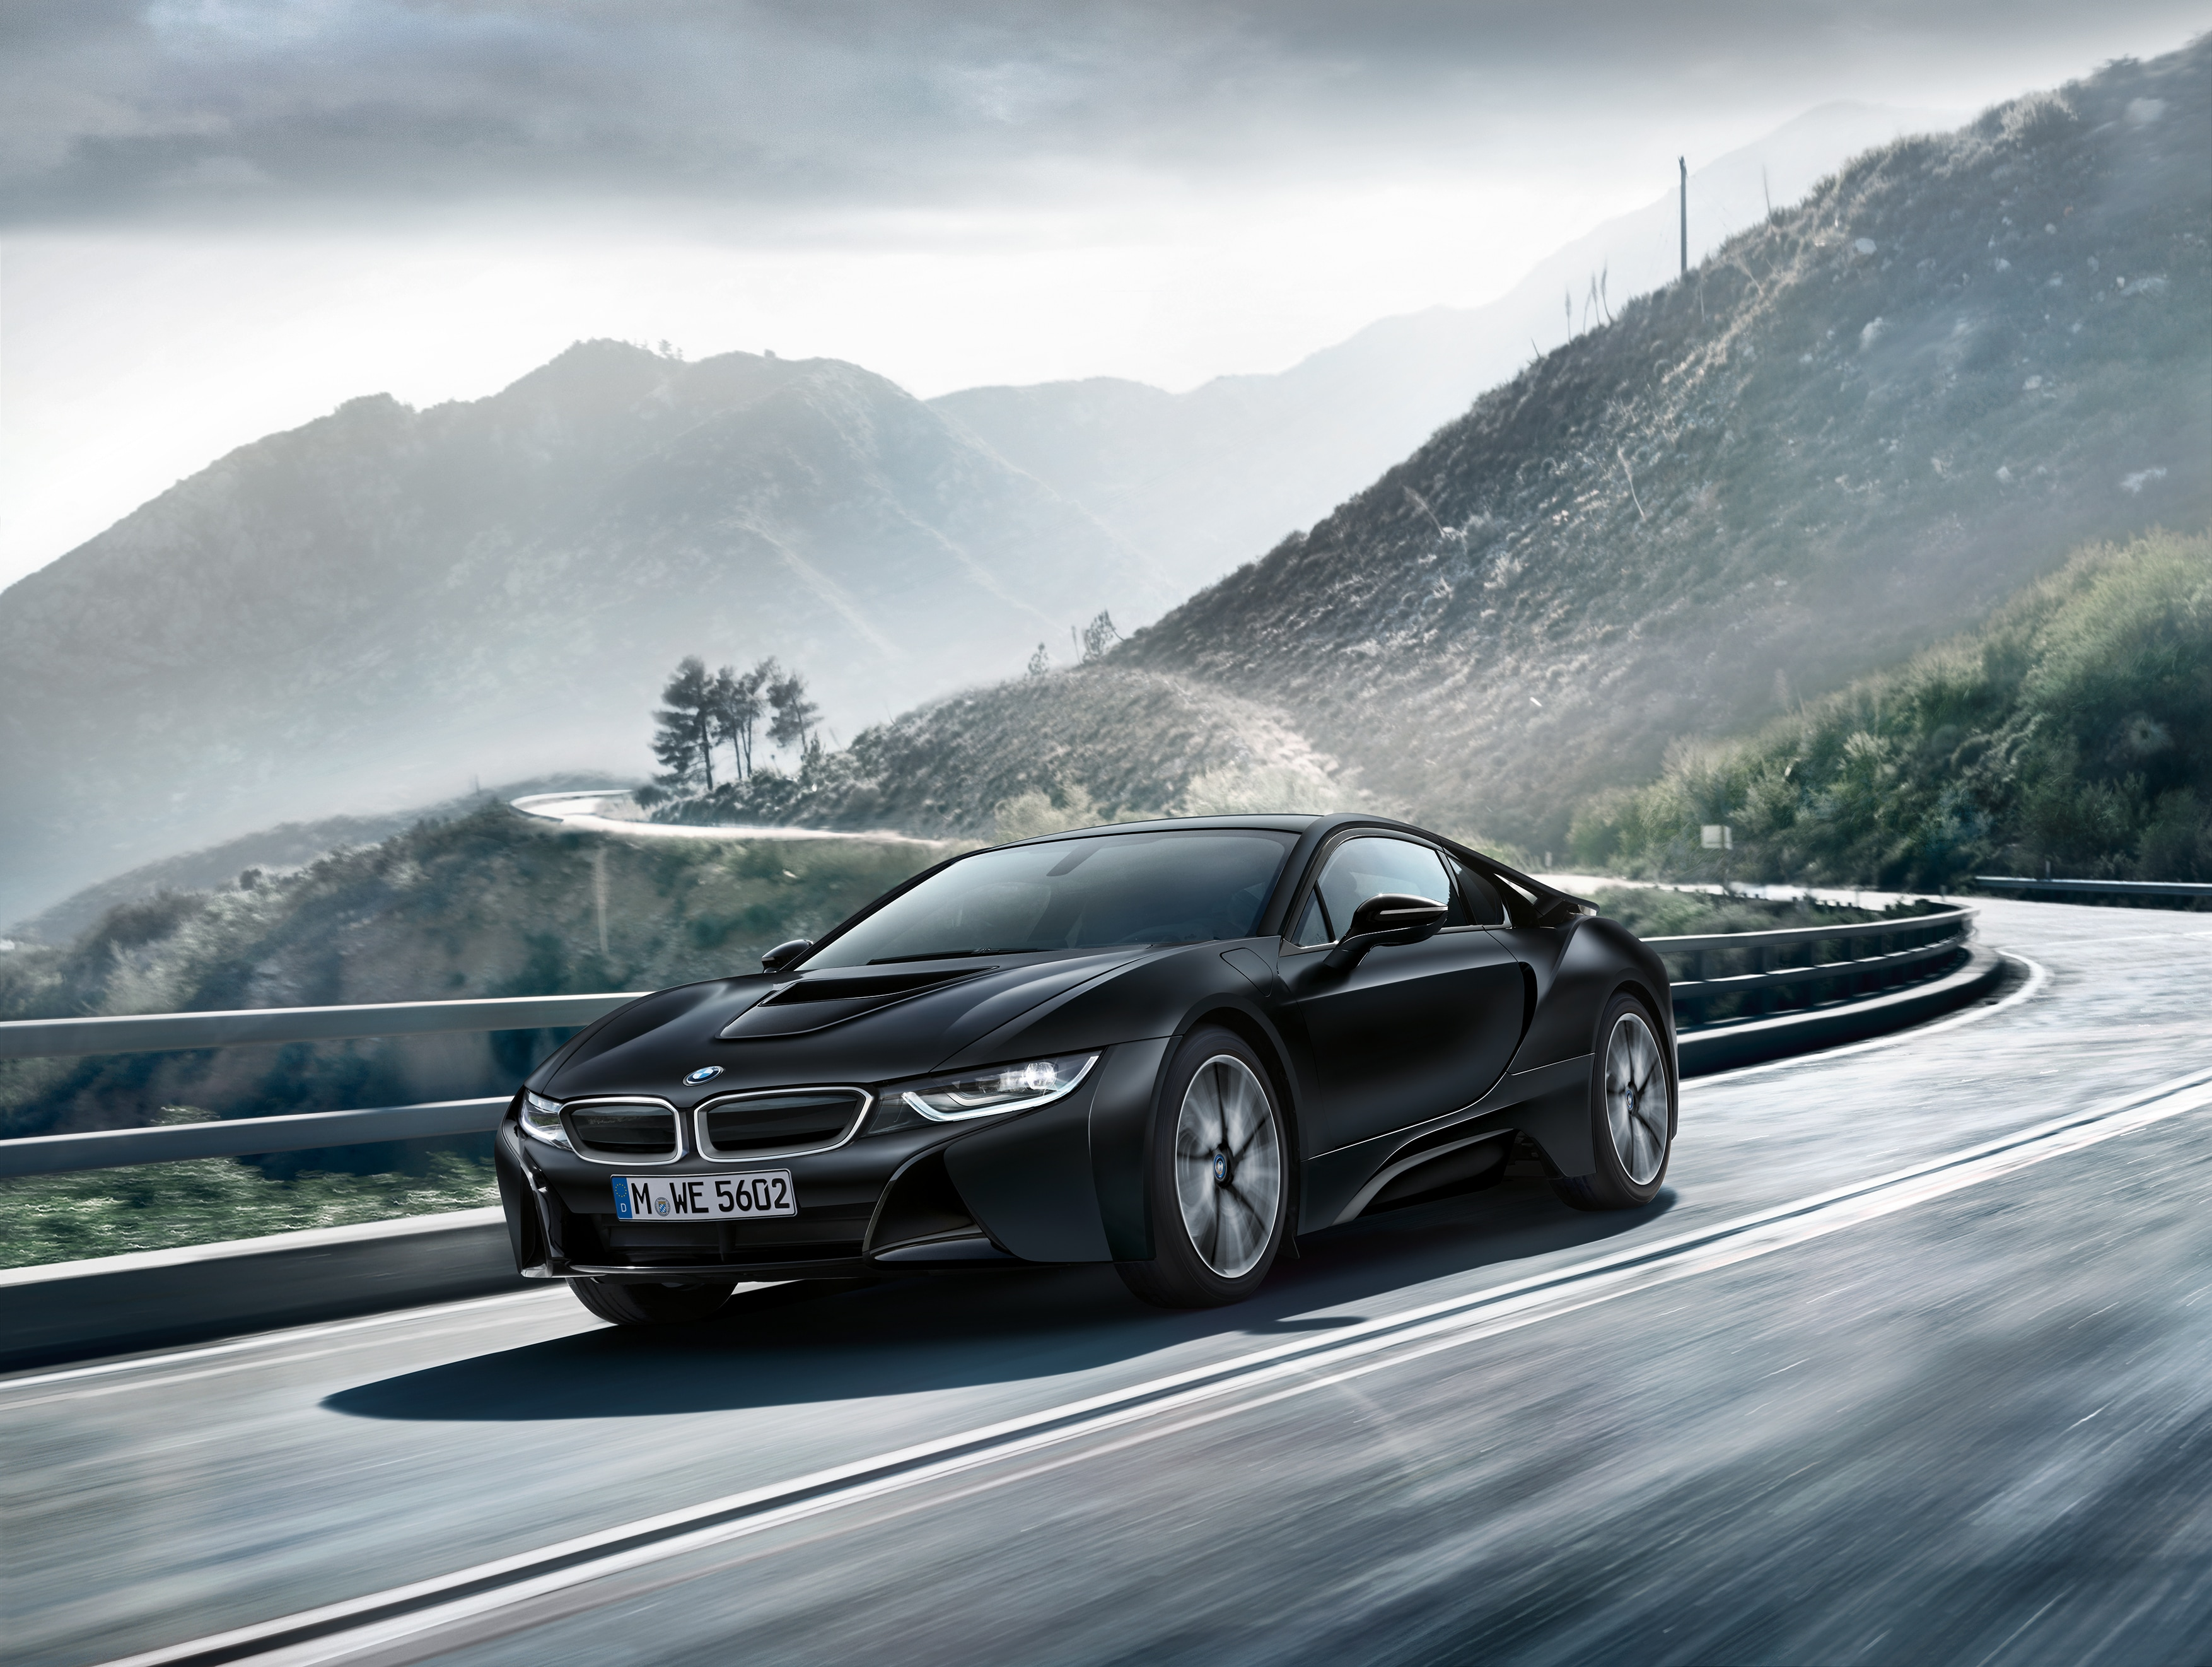 Bmw Of Asheville Refreshed 2017 Bmw I8 To Have A 420 Hp Engine